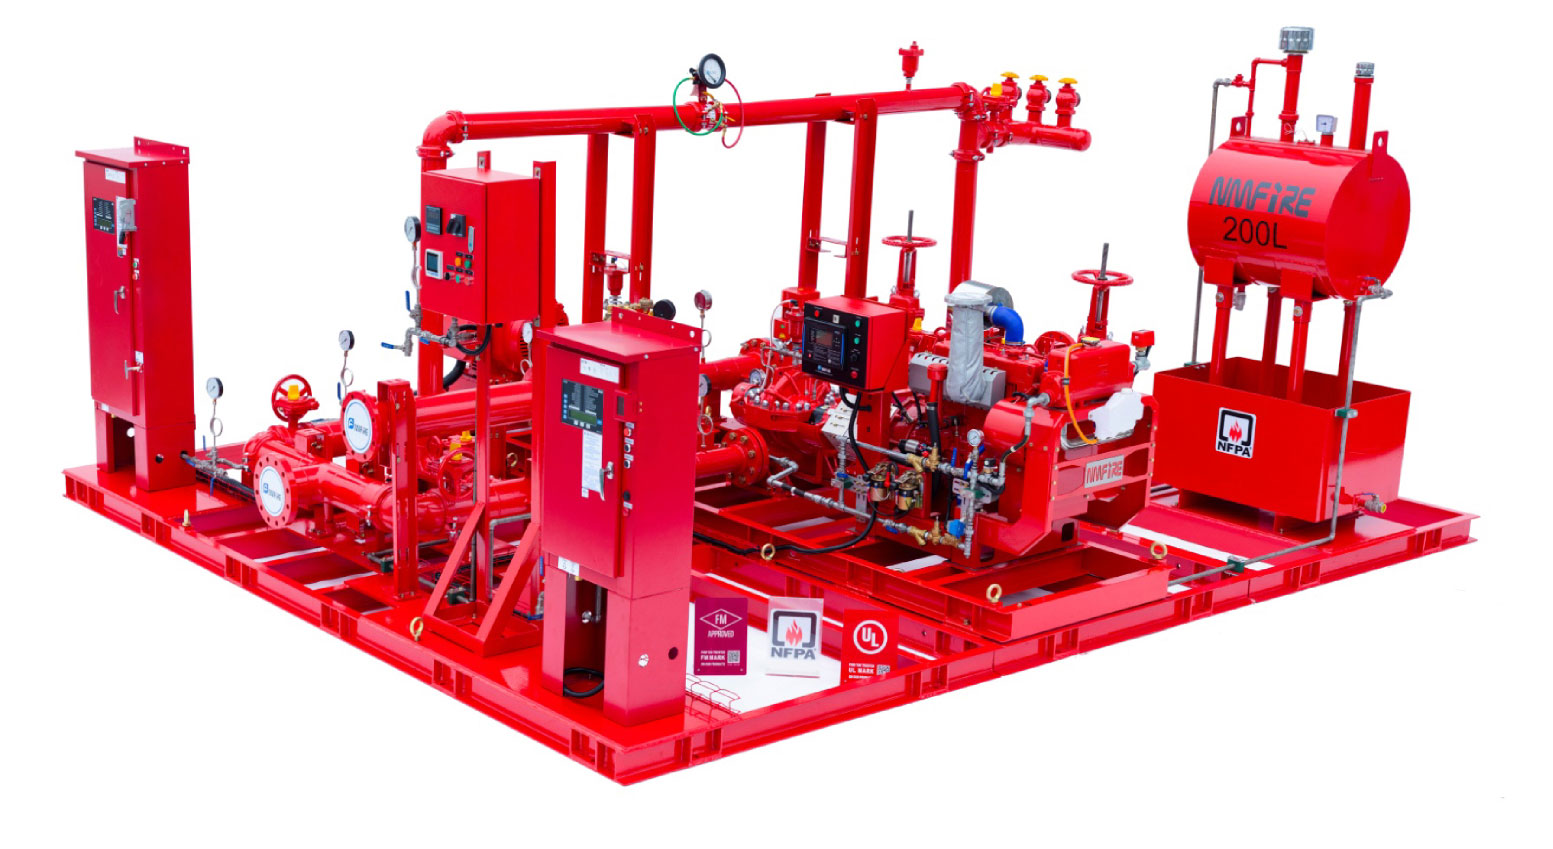 FIRE PUMP ENGINE AND FIRE PUMP MOTOR ON THE SAME PACKAGE.